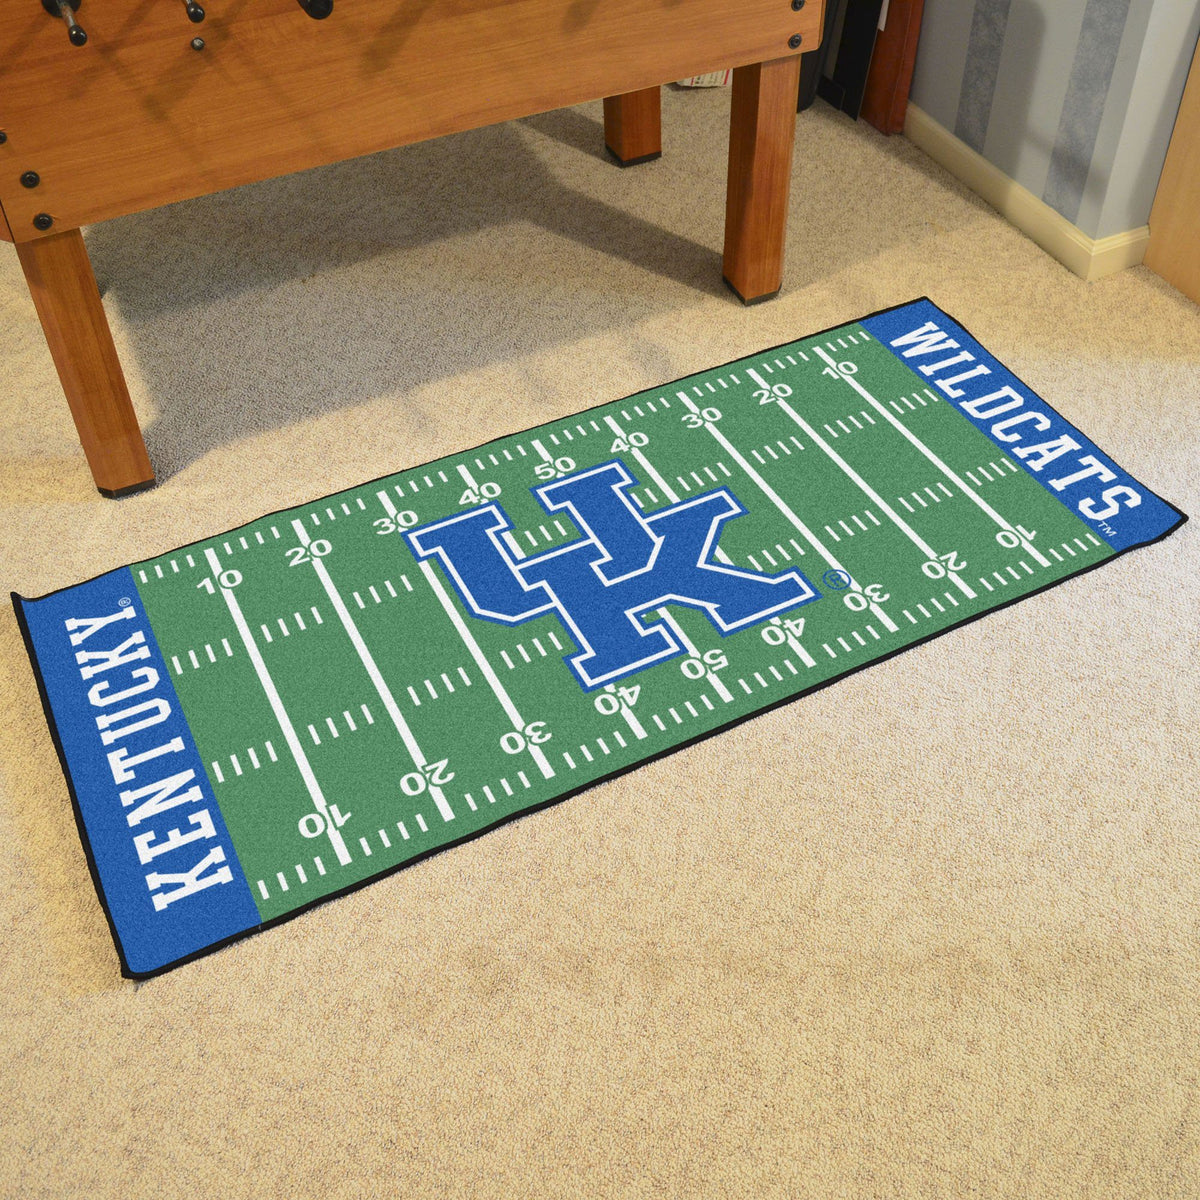 Collegiate - Football Field Runner Collegiate Mats, Rectangular Mats, Football Field Runner, Collegiate, Home Fan Mats Kentucky 2